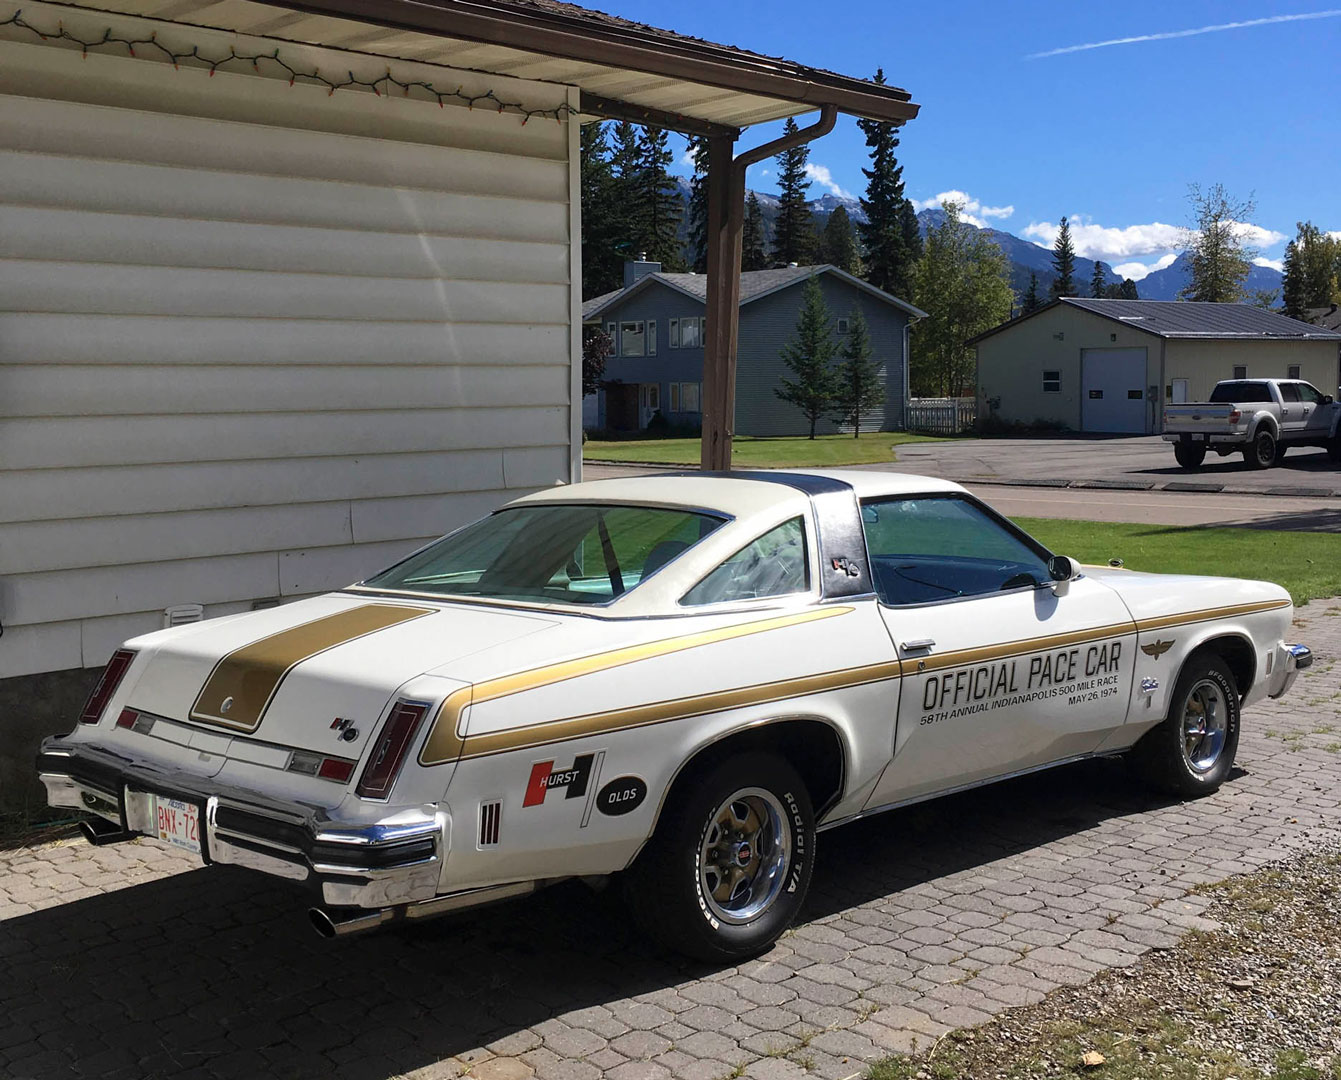 1974 Oldsmobile Cutlass Hurst/Olds Pace Car